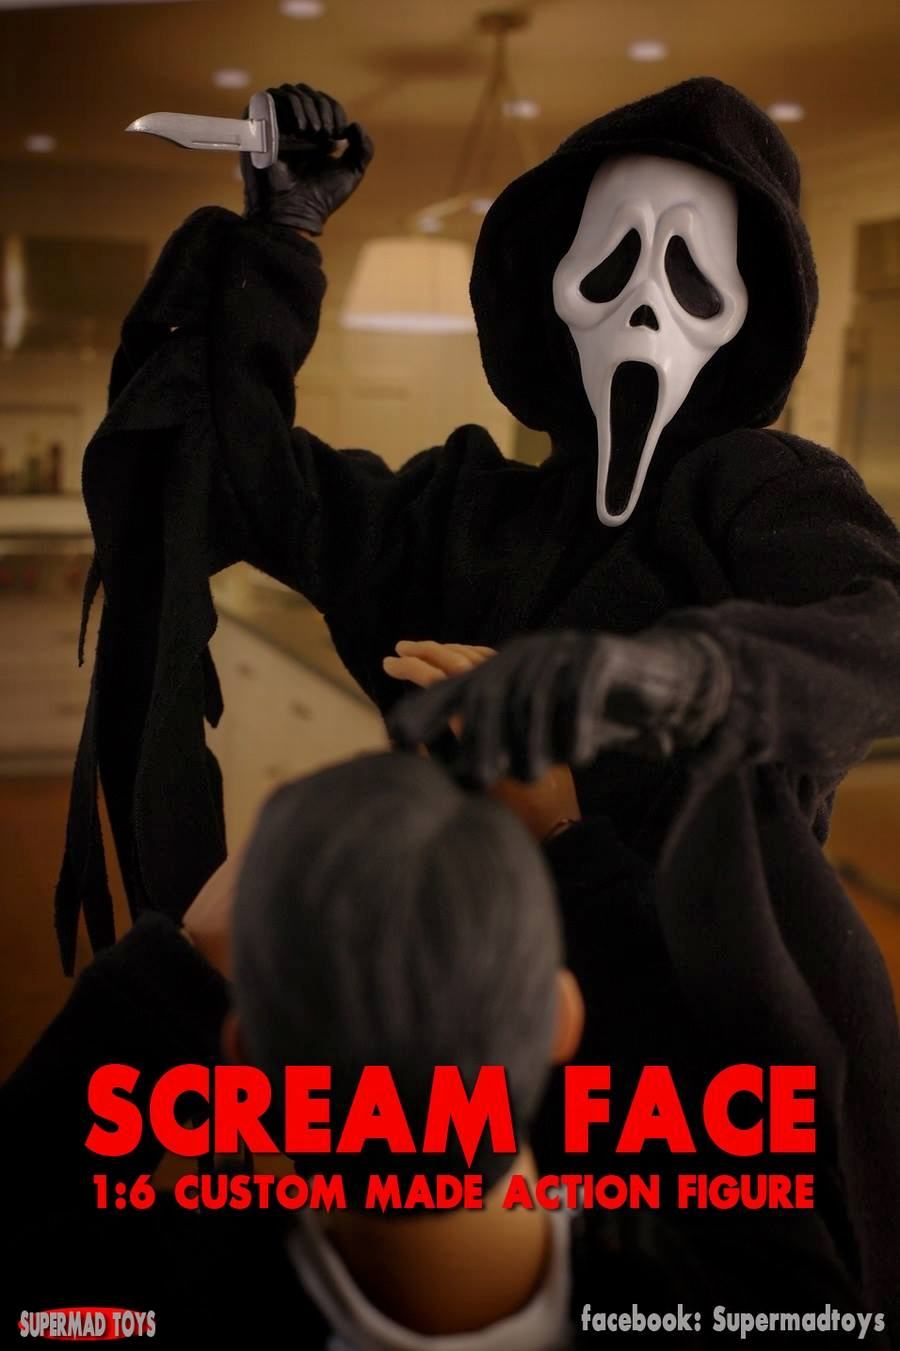 ghostface-scream-custom-made-action-figure-05